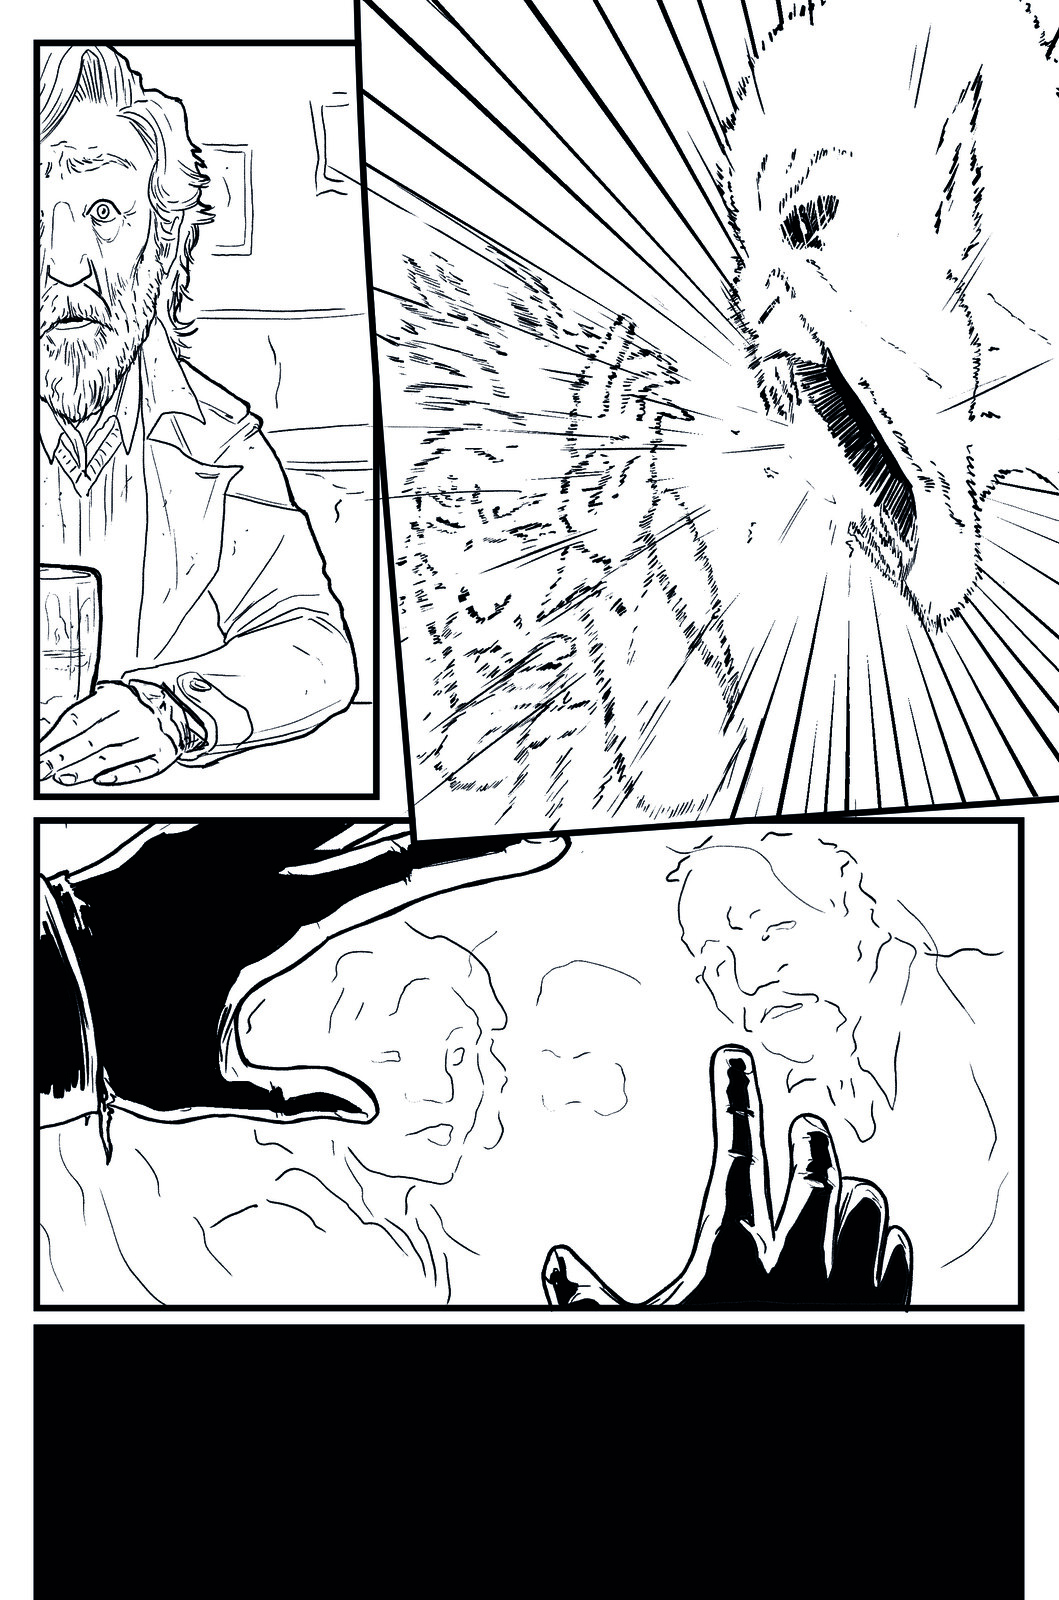 Page 3 Inks